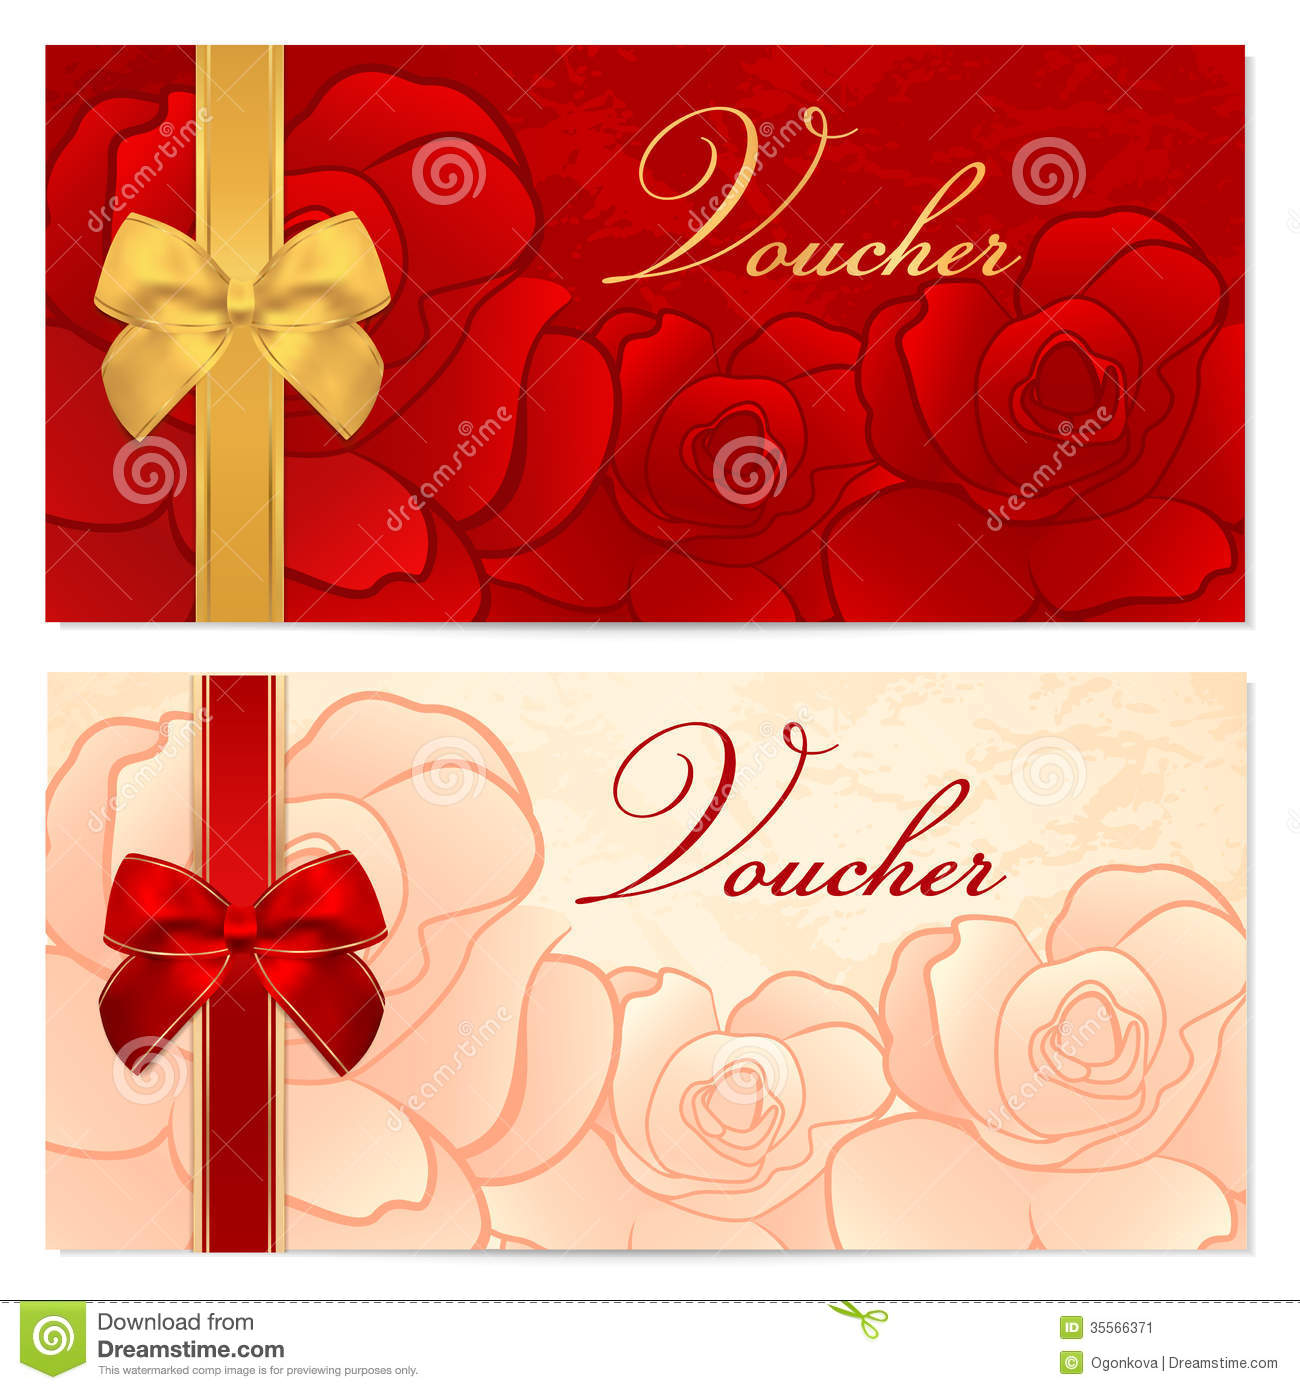 Gift Certificate Design Template Jolivibramusicco - Design a gift certificate template free